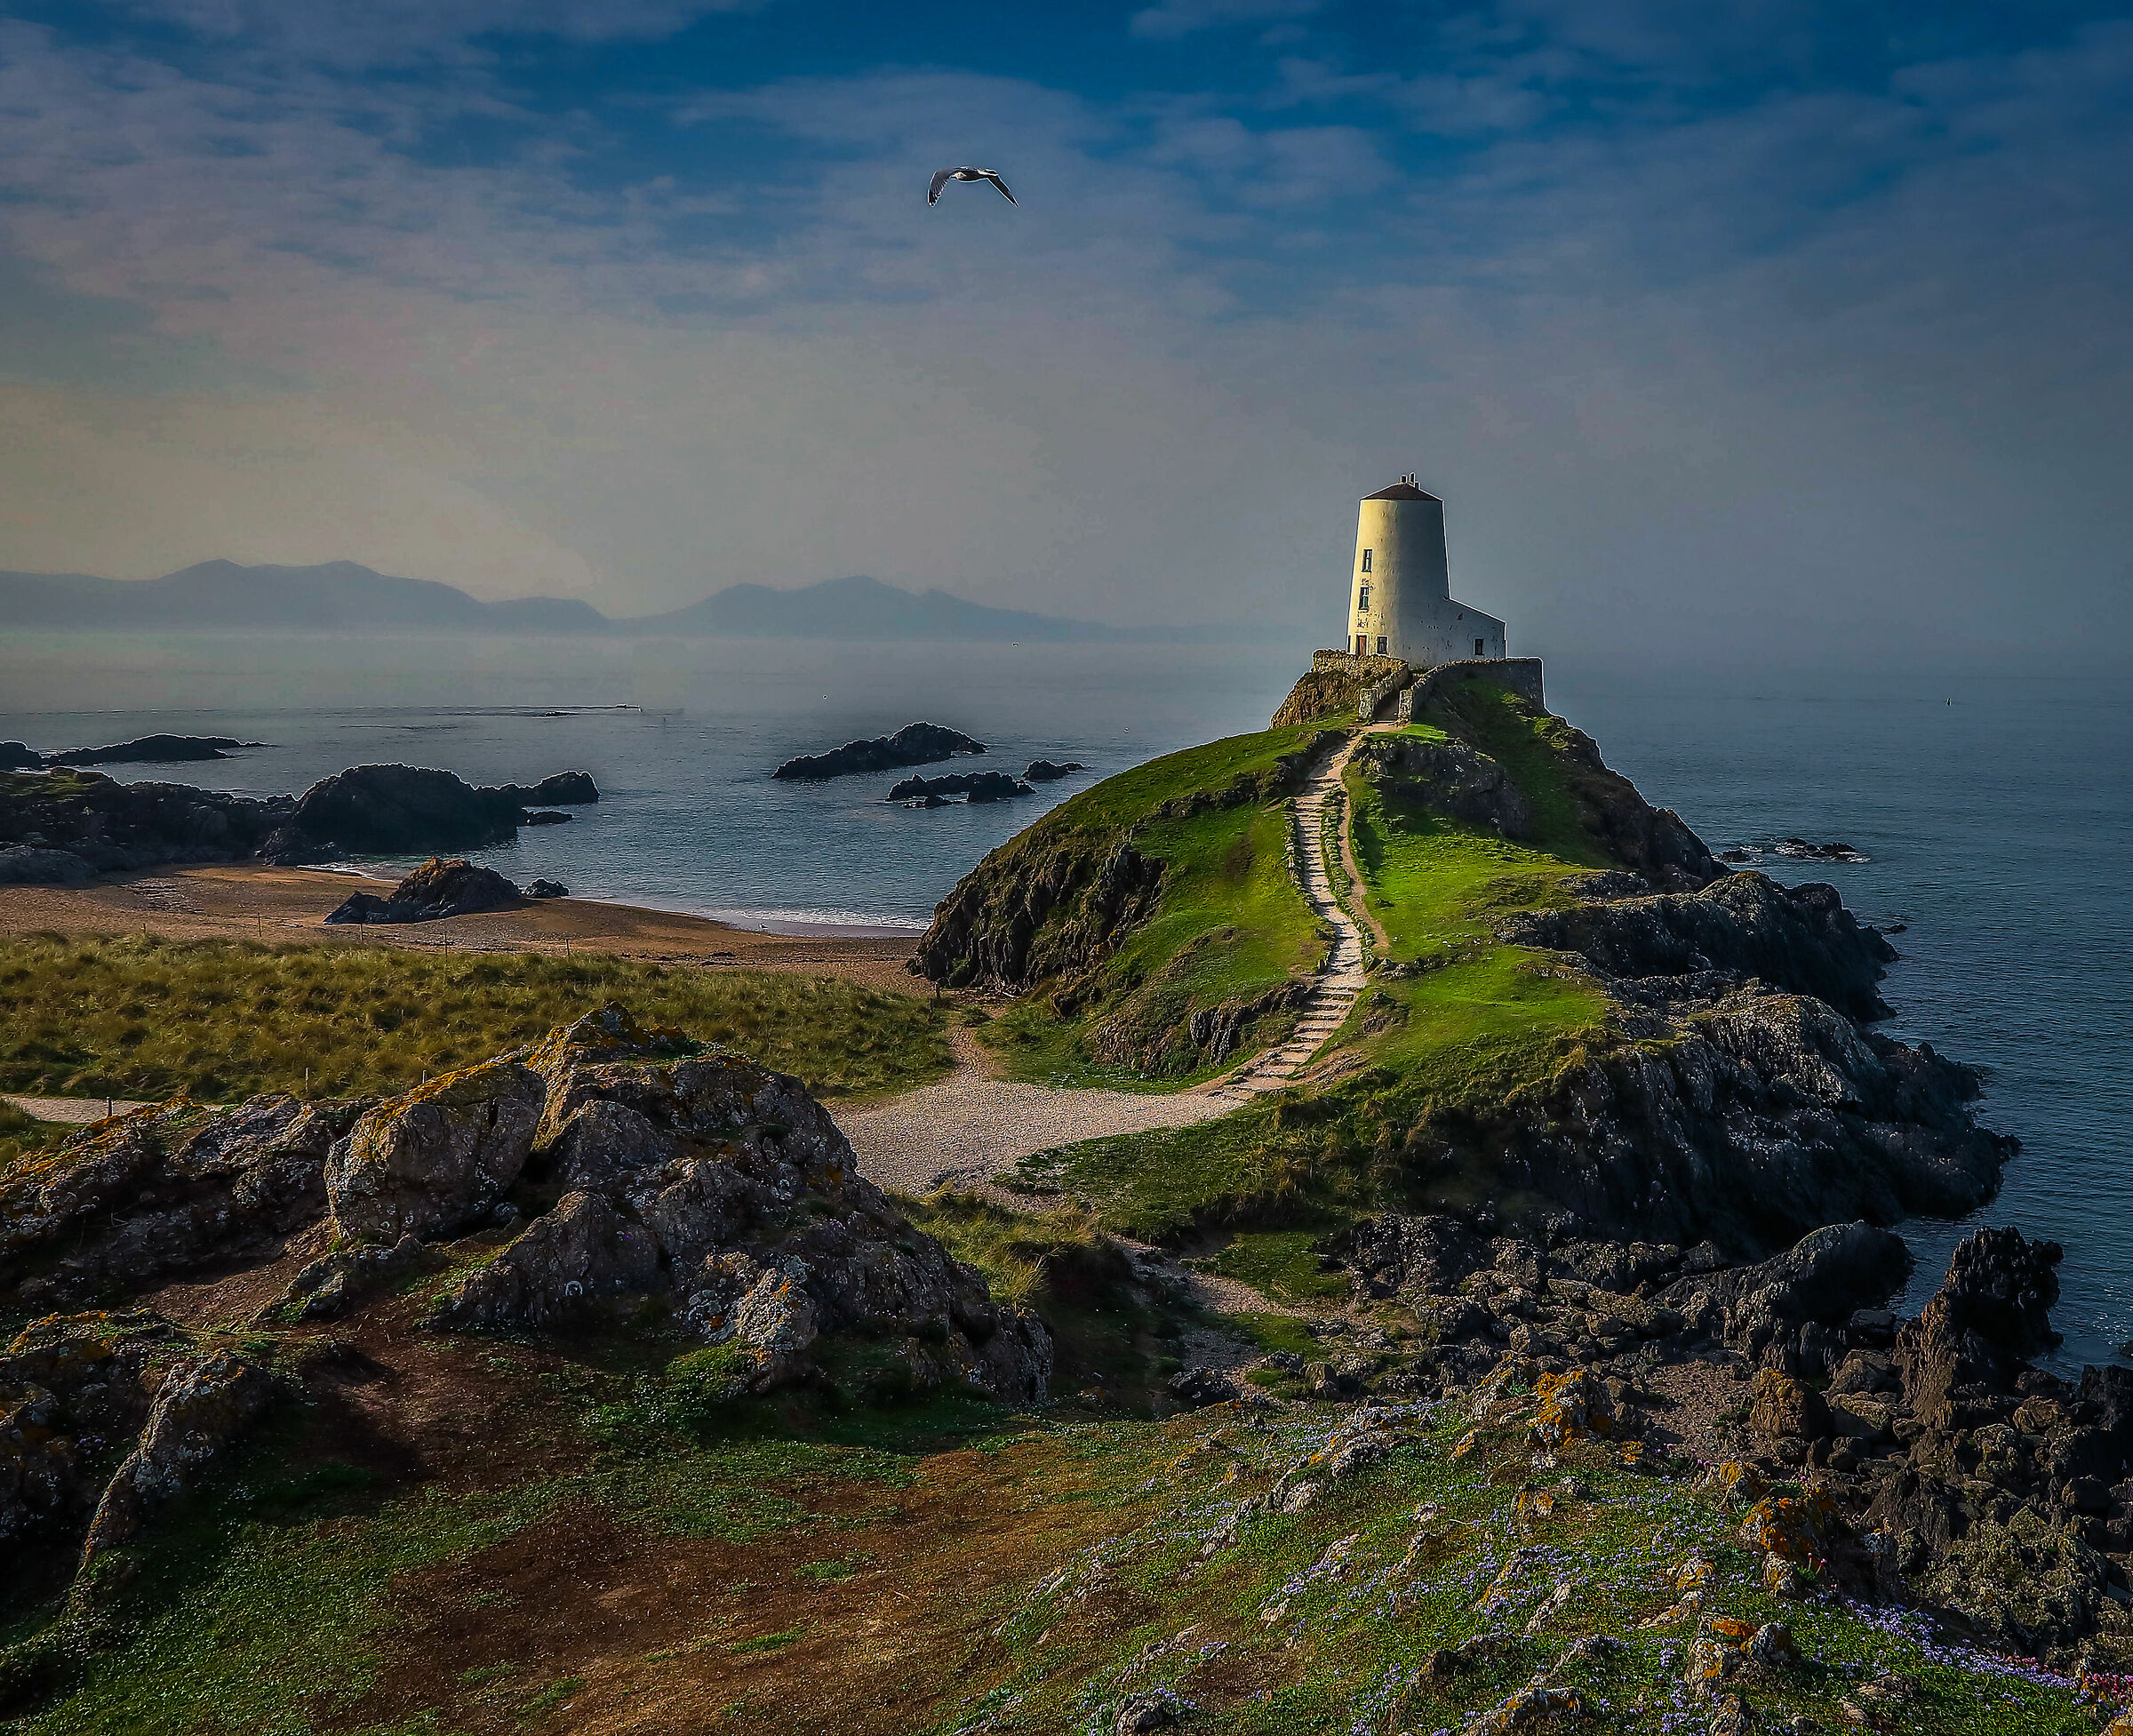 The Lighthouse......